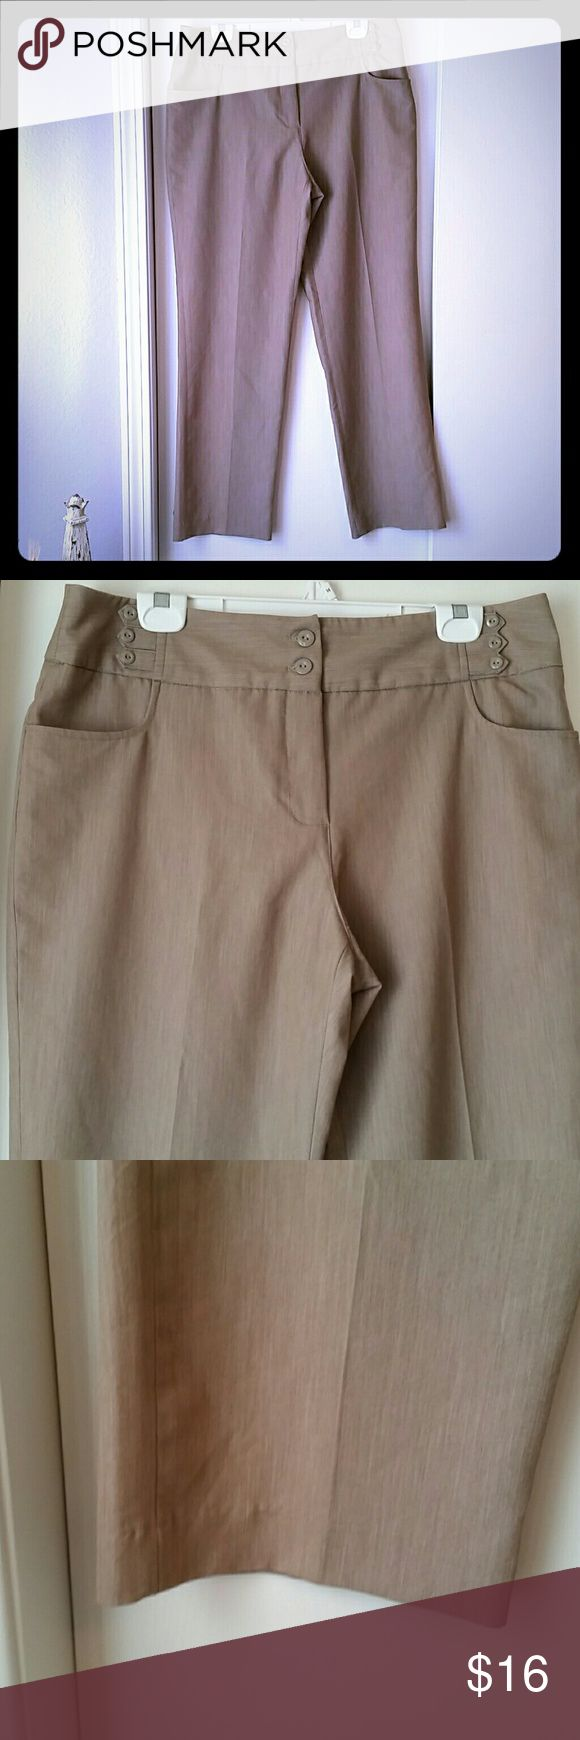 """Cato Tan Straight Leg Trousers This pair of Trousers is great for any work wardrobe. They are a dark Khaki/tan color. Unique button detailing at the front waist and on the rear faux pockets. Front pockets are real. Button and zipper closure. Only worn a few times. Size 16. Excellent condition.  Waist: 18"""" Hip: 22"""" Inseam: 31"""" Bottom leg opening width: 9.25""""  Machine wash, tumble dry low. Cato Pants Trousers"""